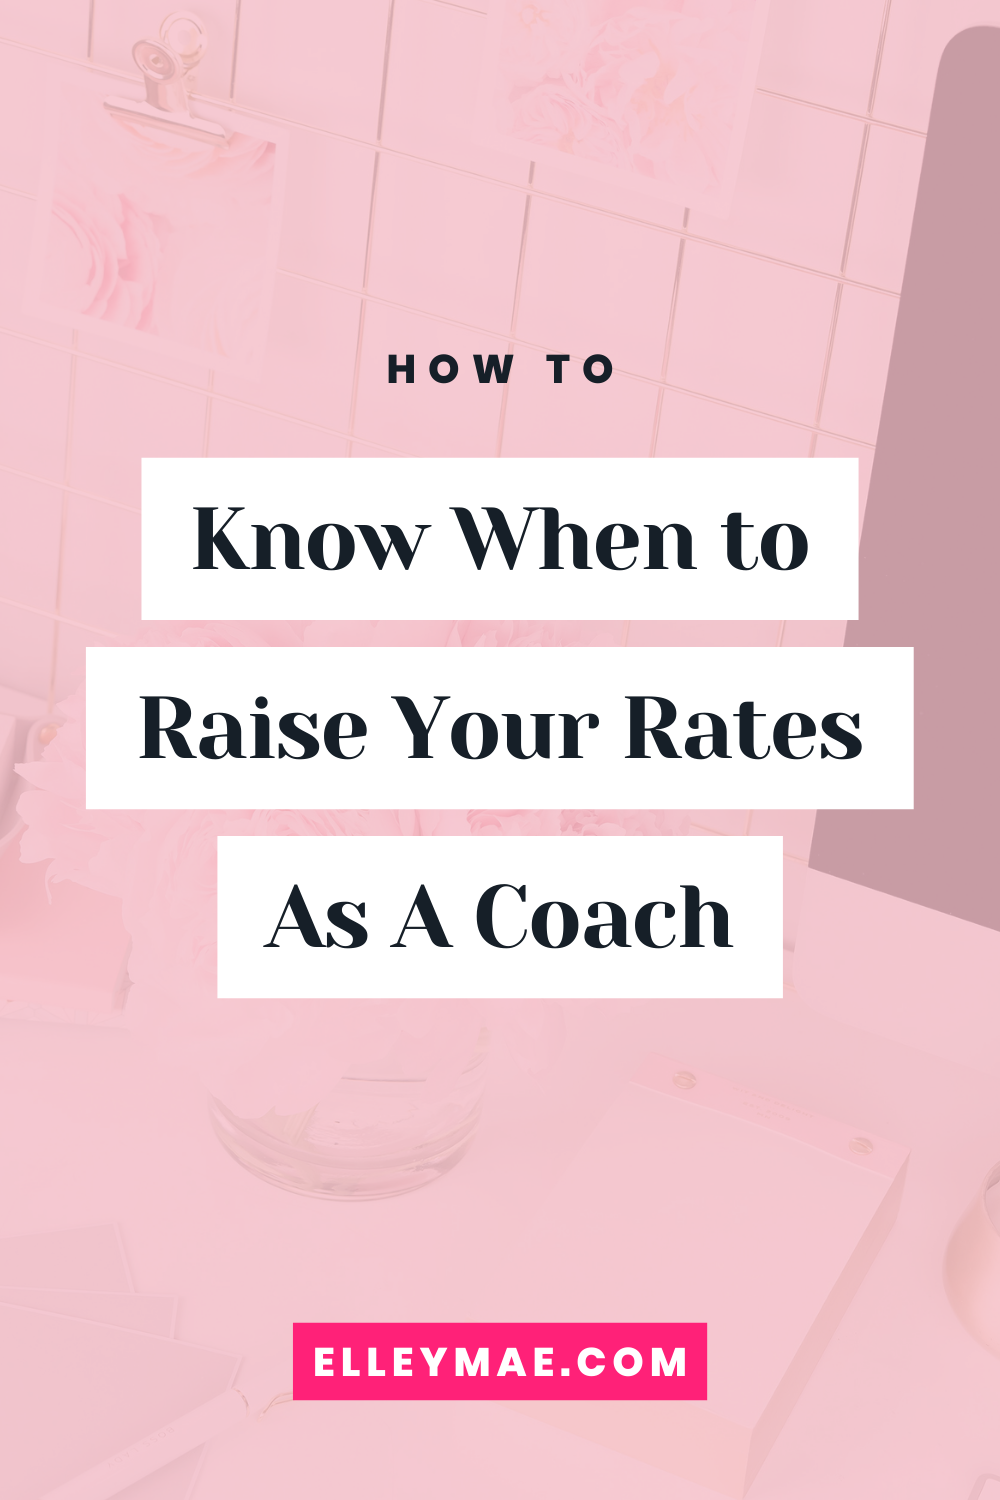 065. How to Know If You're Ready to Raise Your Rates